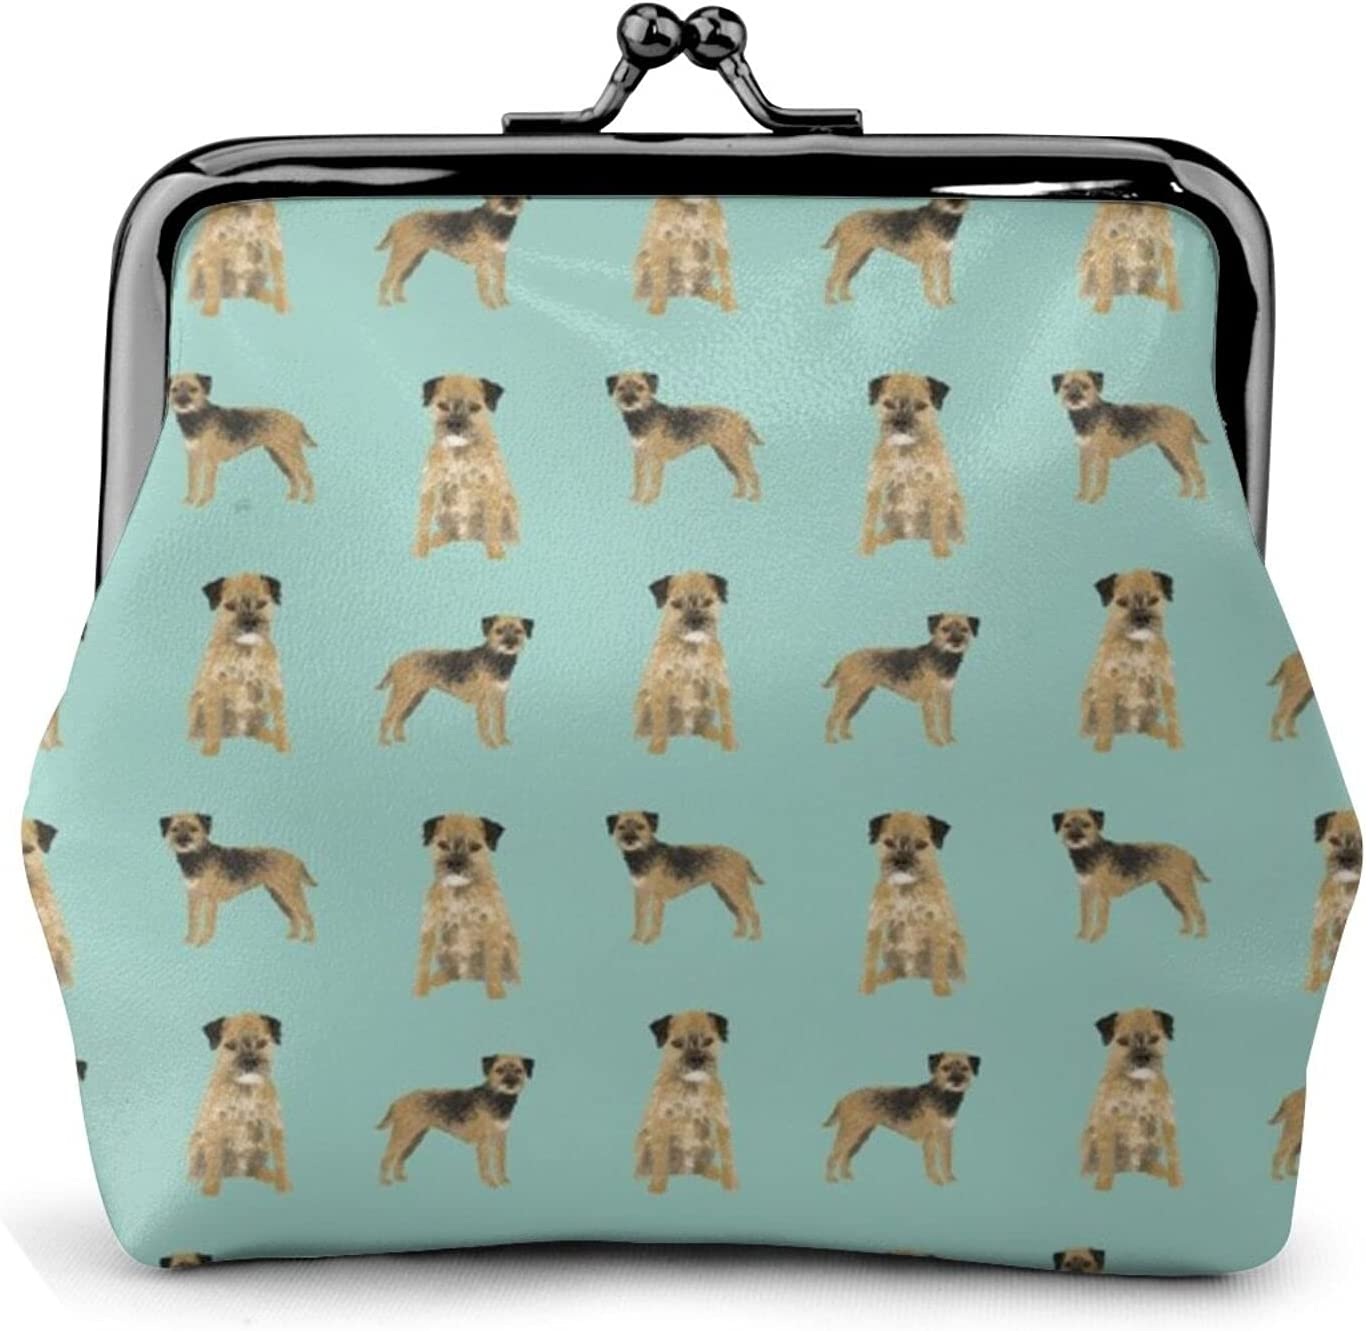 Border Terrier Dog 891 Women'S Wallet Buckle Coin Purses Pouch Kiss-lock Change Travel Makeup Wallets, Black, One Size